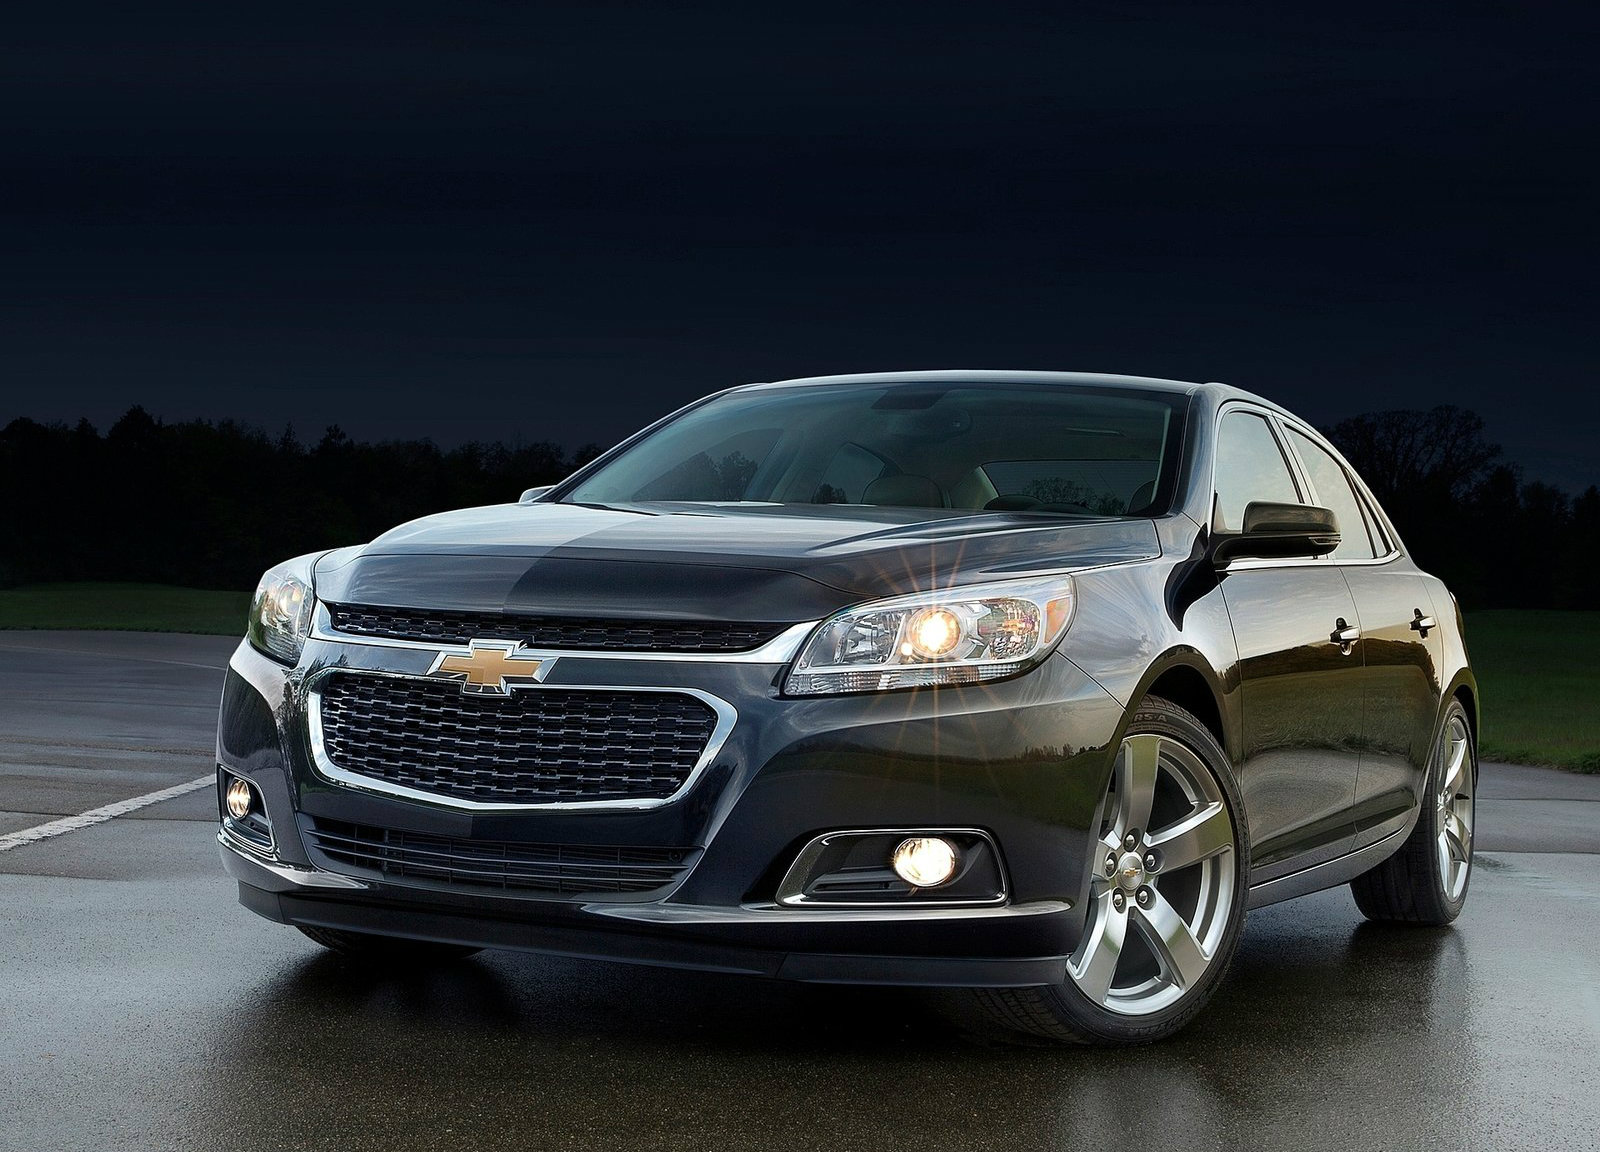 2014 chevrolet malibu buick lacrosse recalled over braking issue. Cars Review. Best American Auto & Cars Review